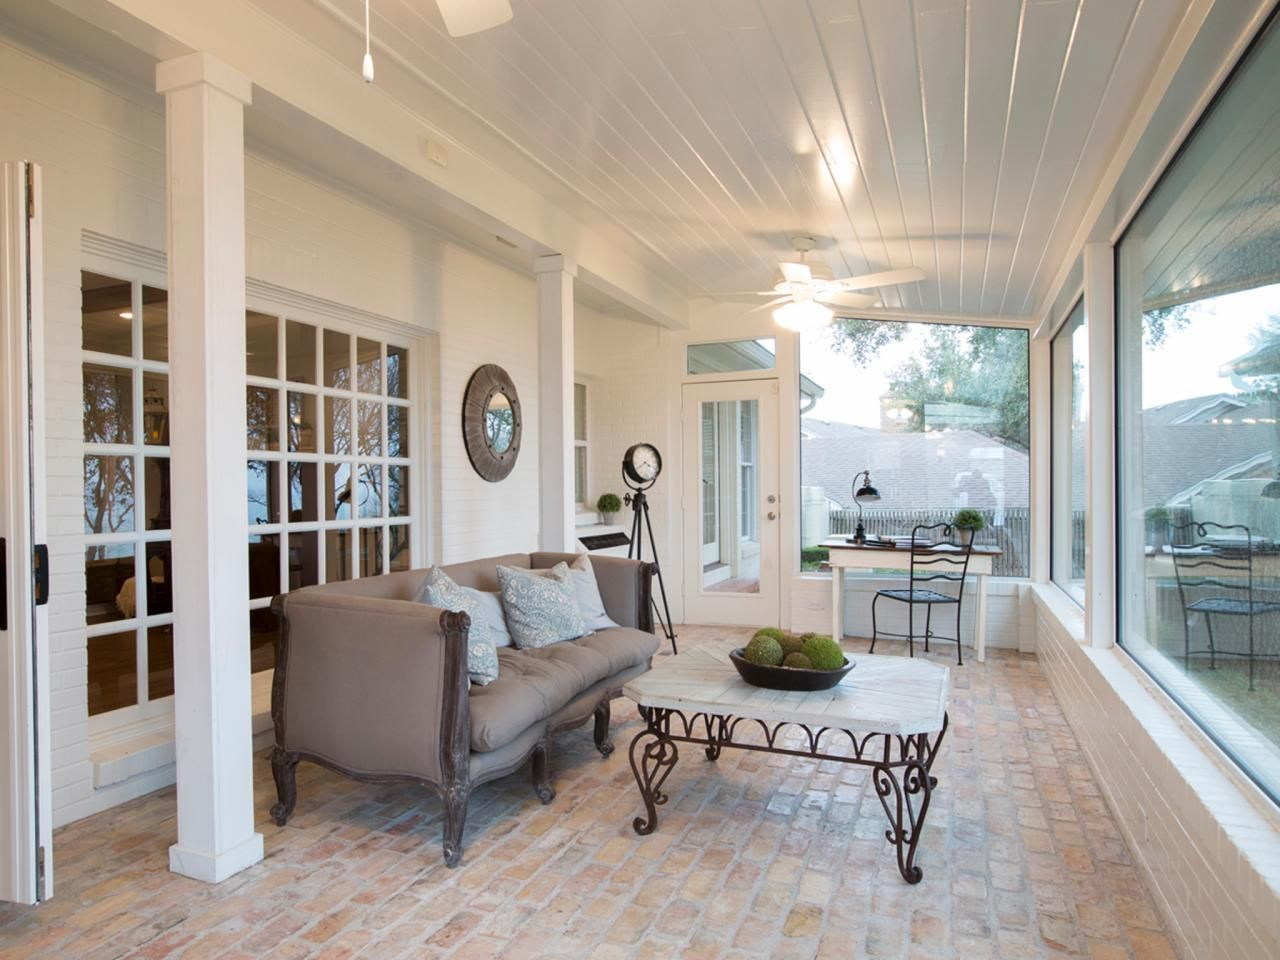 French Country Joanna Gaines Living Room Creating French Country In The Texas Suburbs Brick